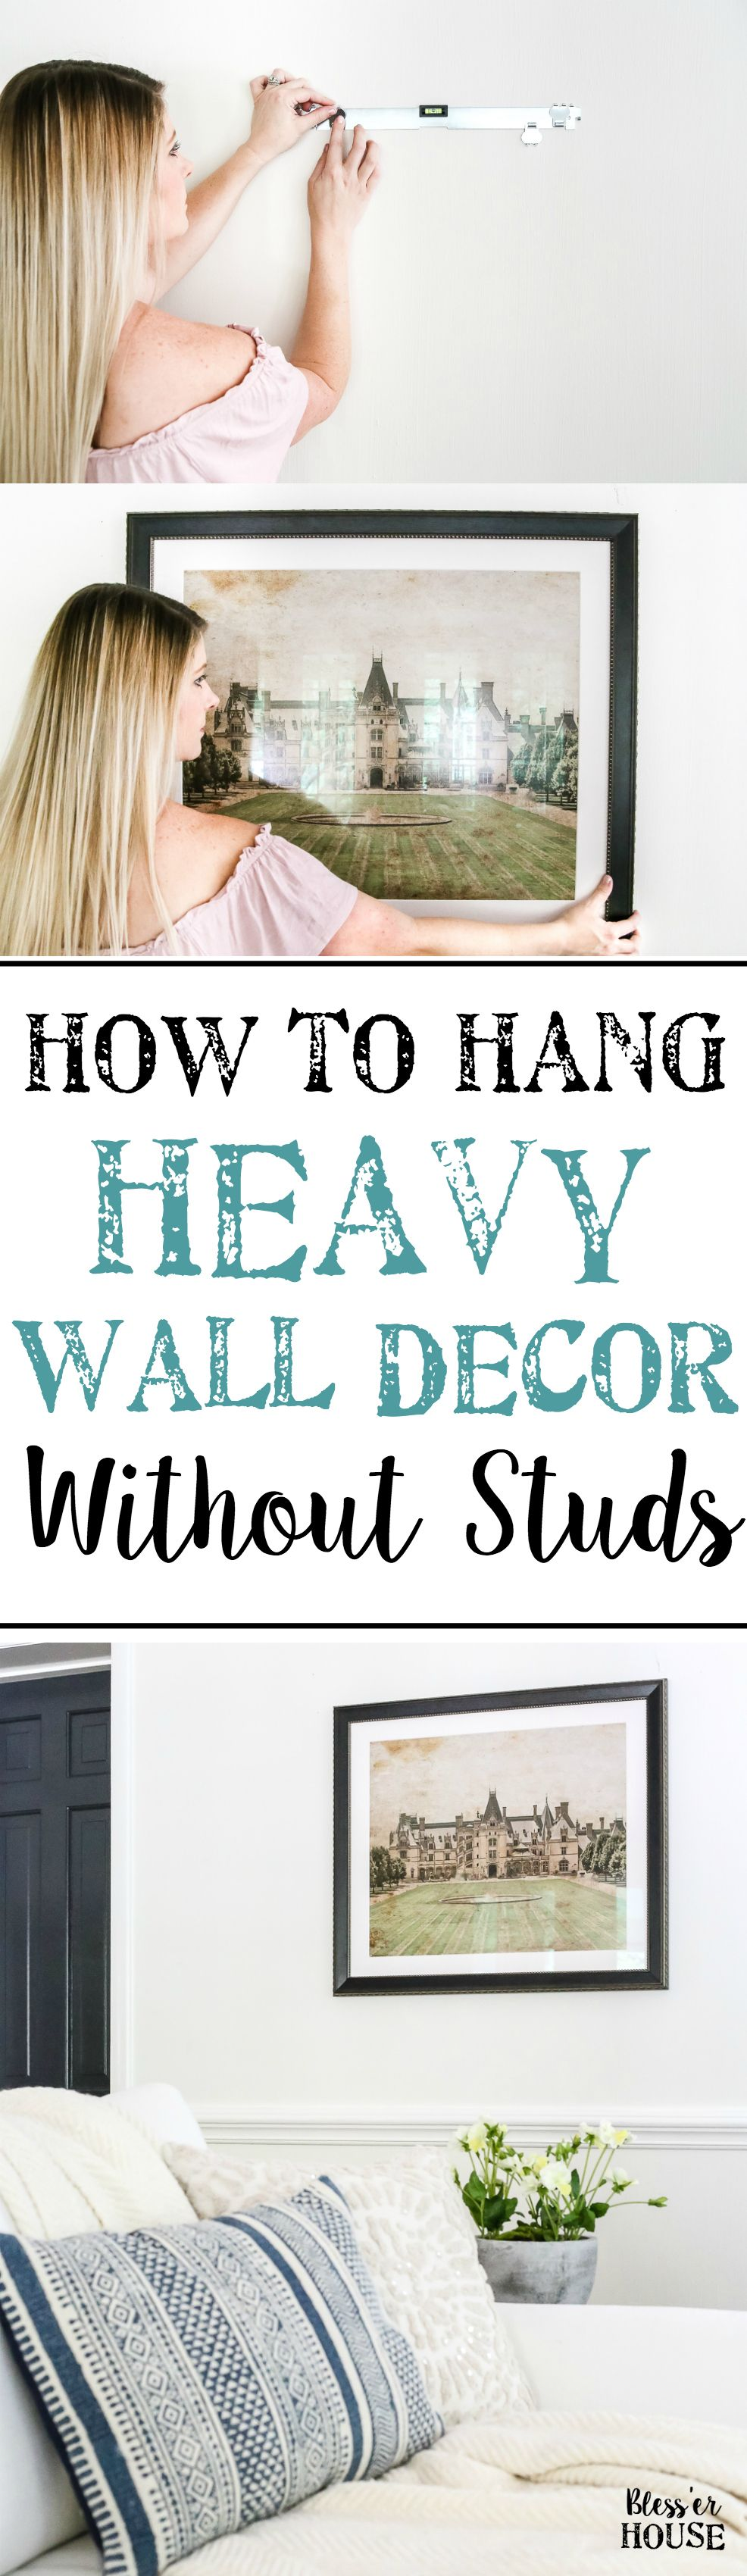 How to hang heavy pictures without studs - How To Hang Heavy Wall Decor Without Studs